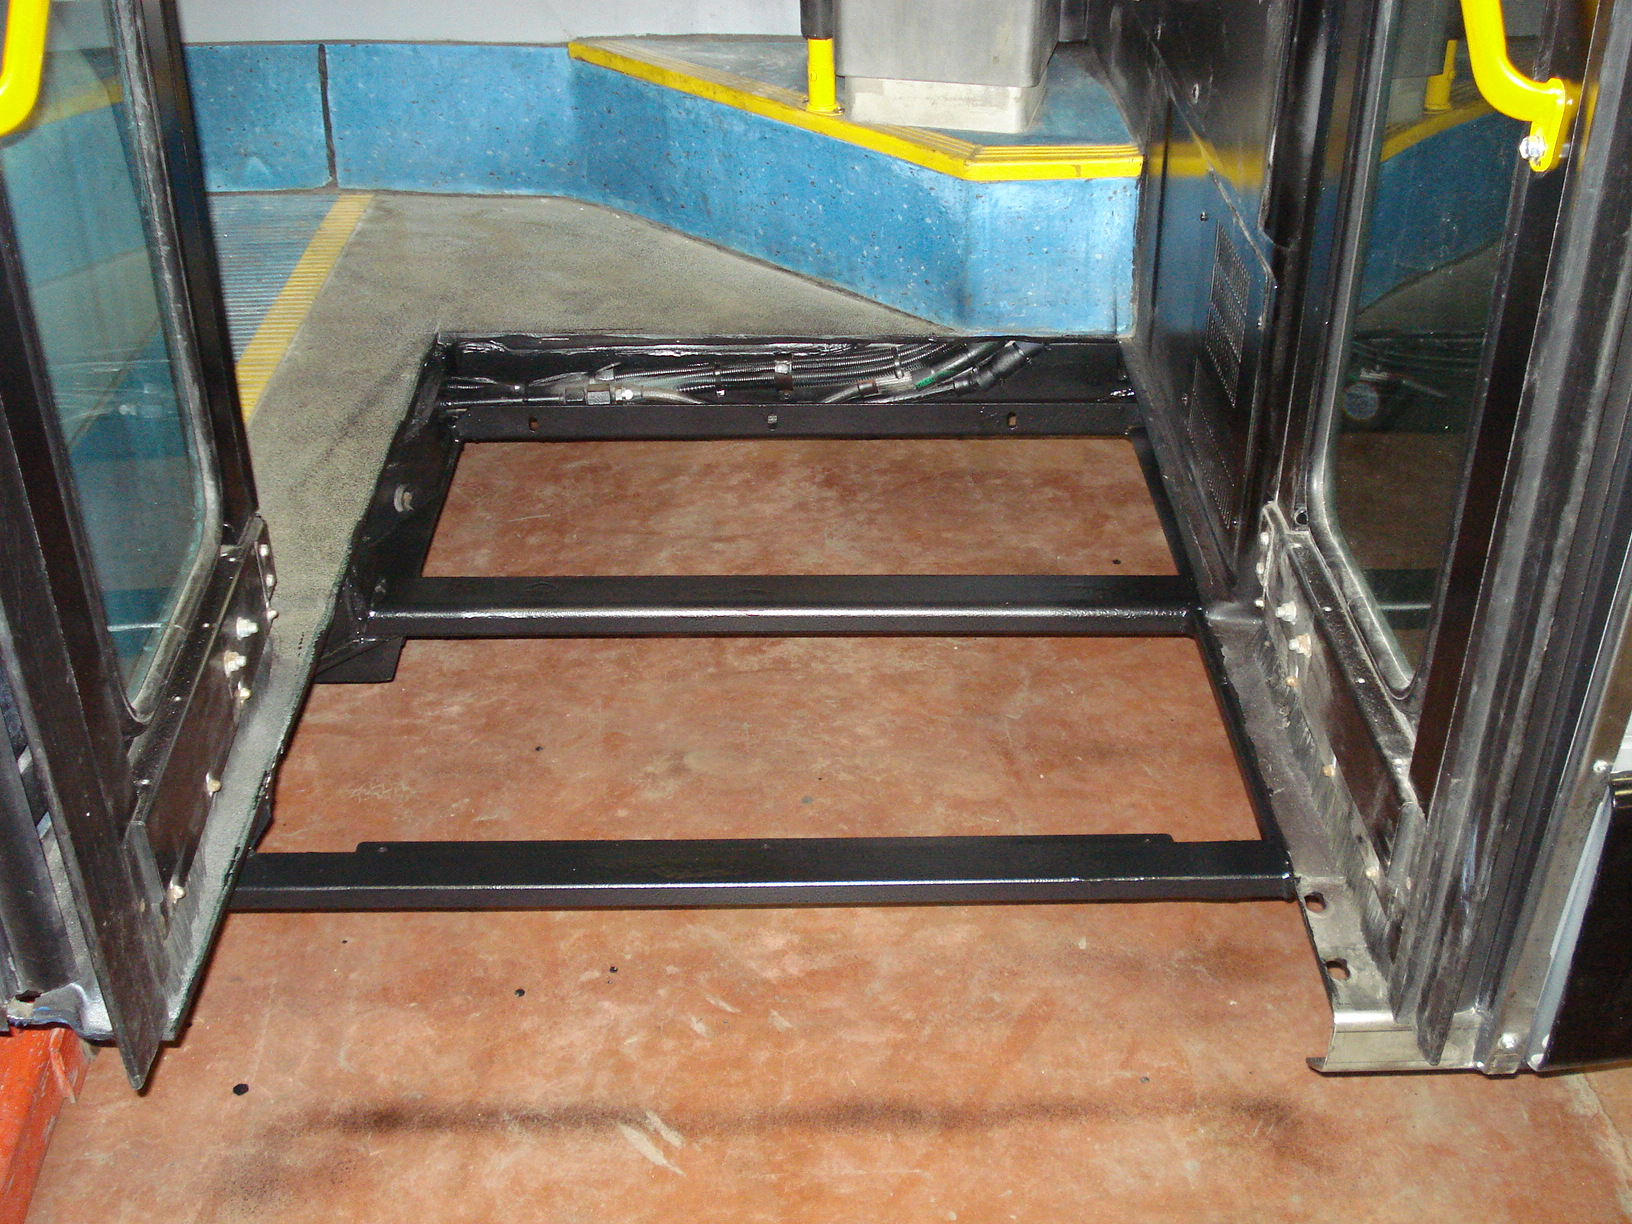 New ramp frame installed and painted after old ramp and frame removed.